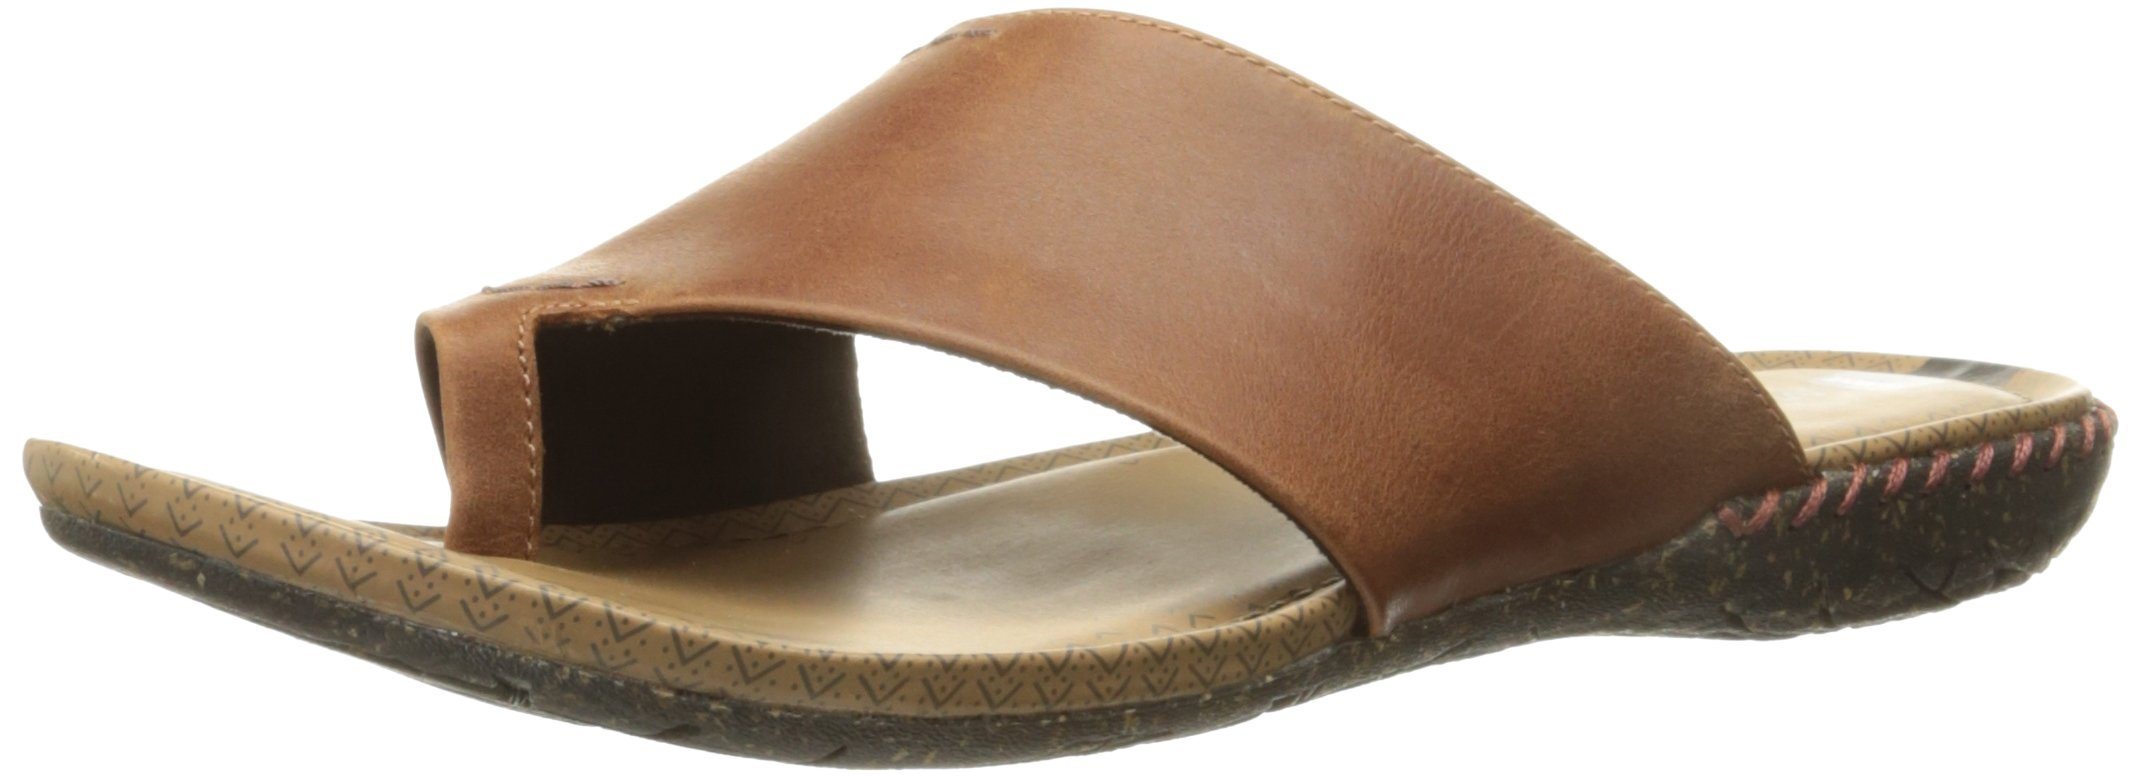 Merrell Women's Whisper Wrap Sandal, Tan, 11 M US